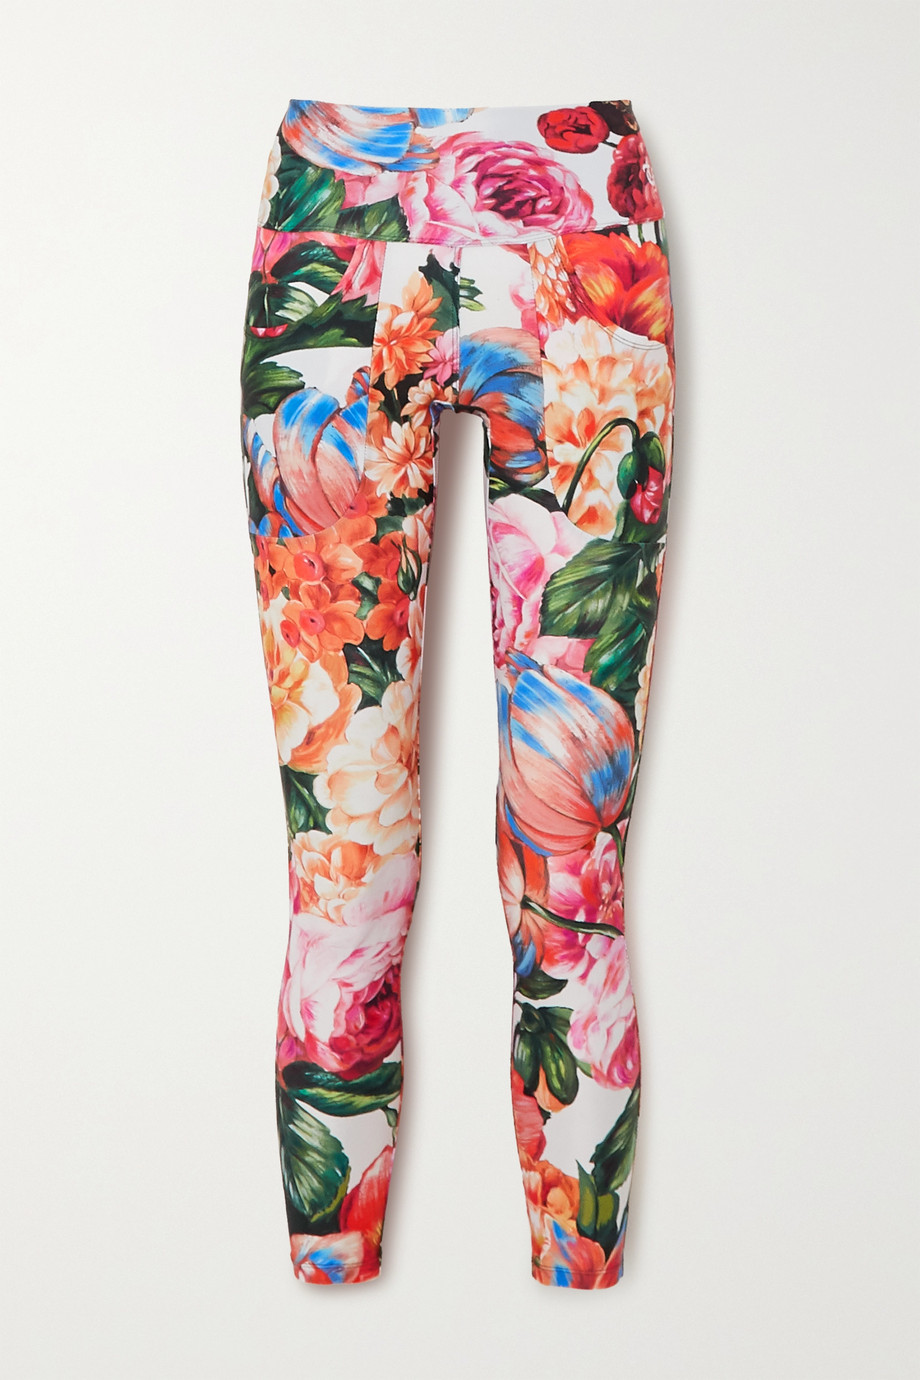 Twin Fantasy Floral-print stretch leggings